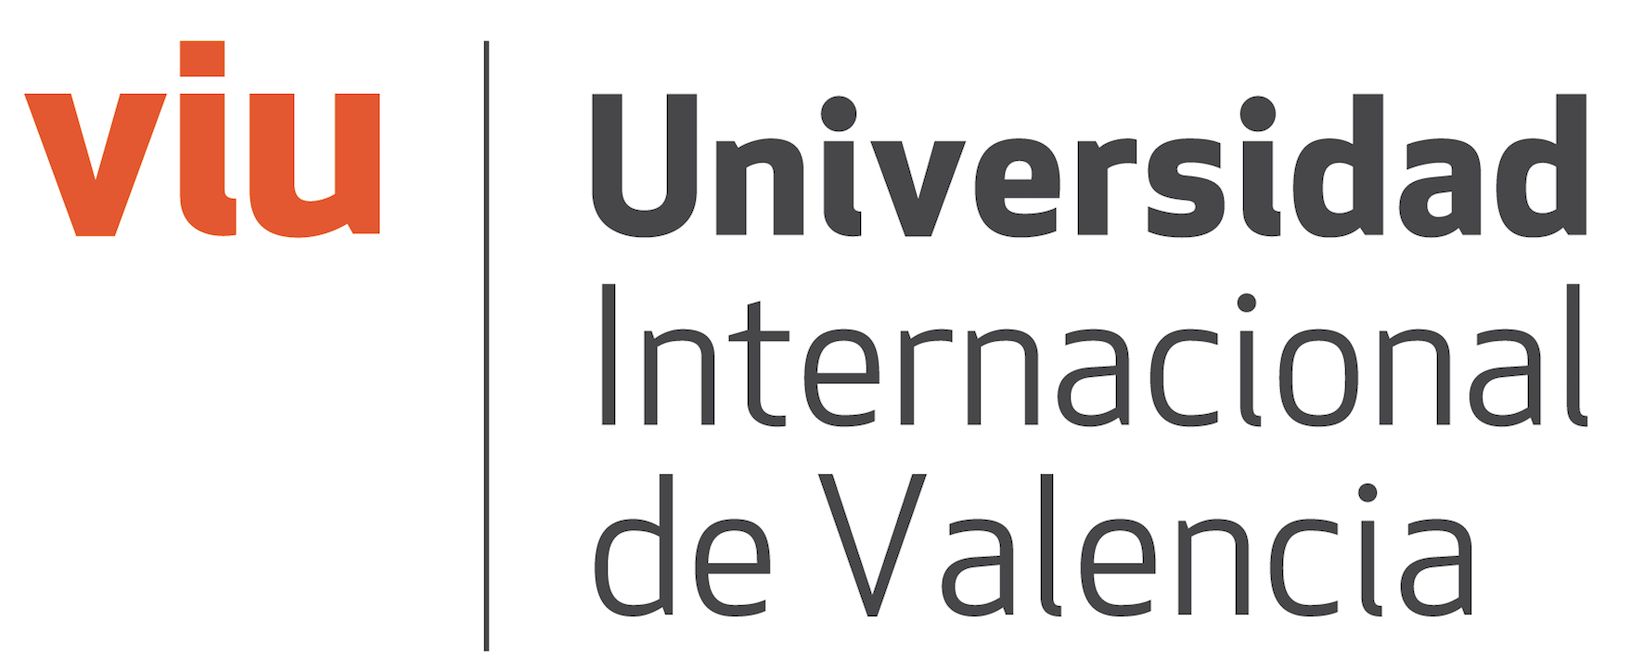 Universidad Internacional de Valencia